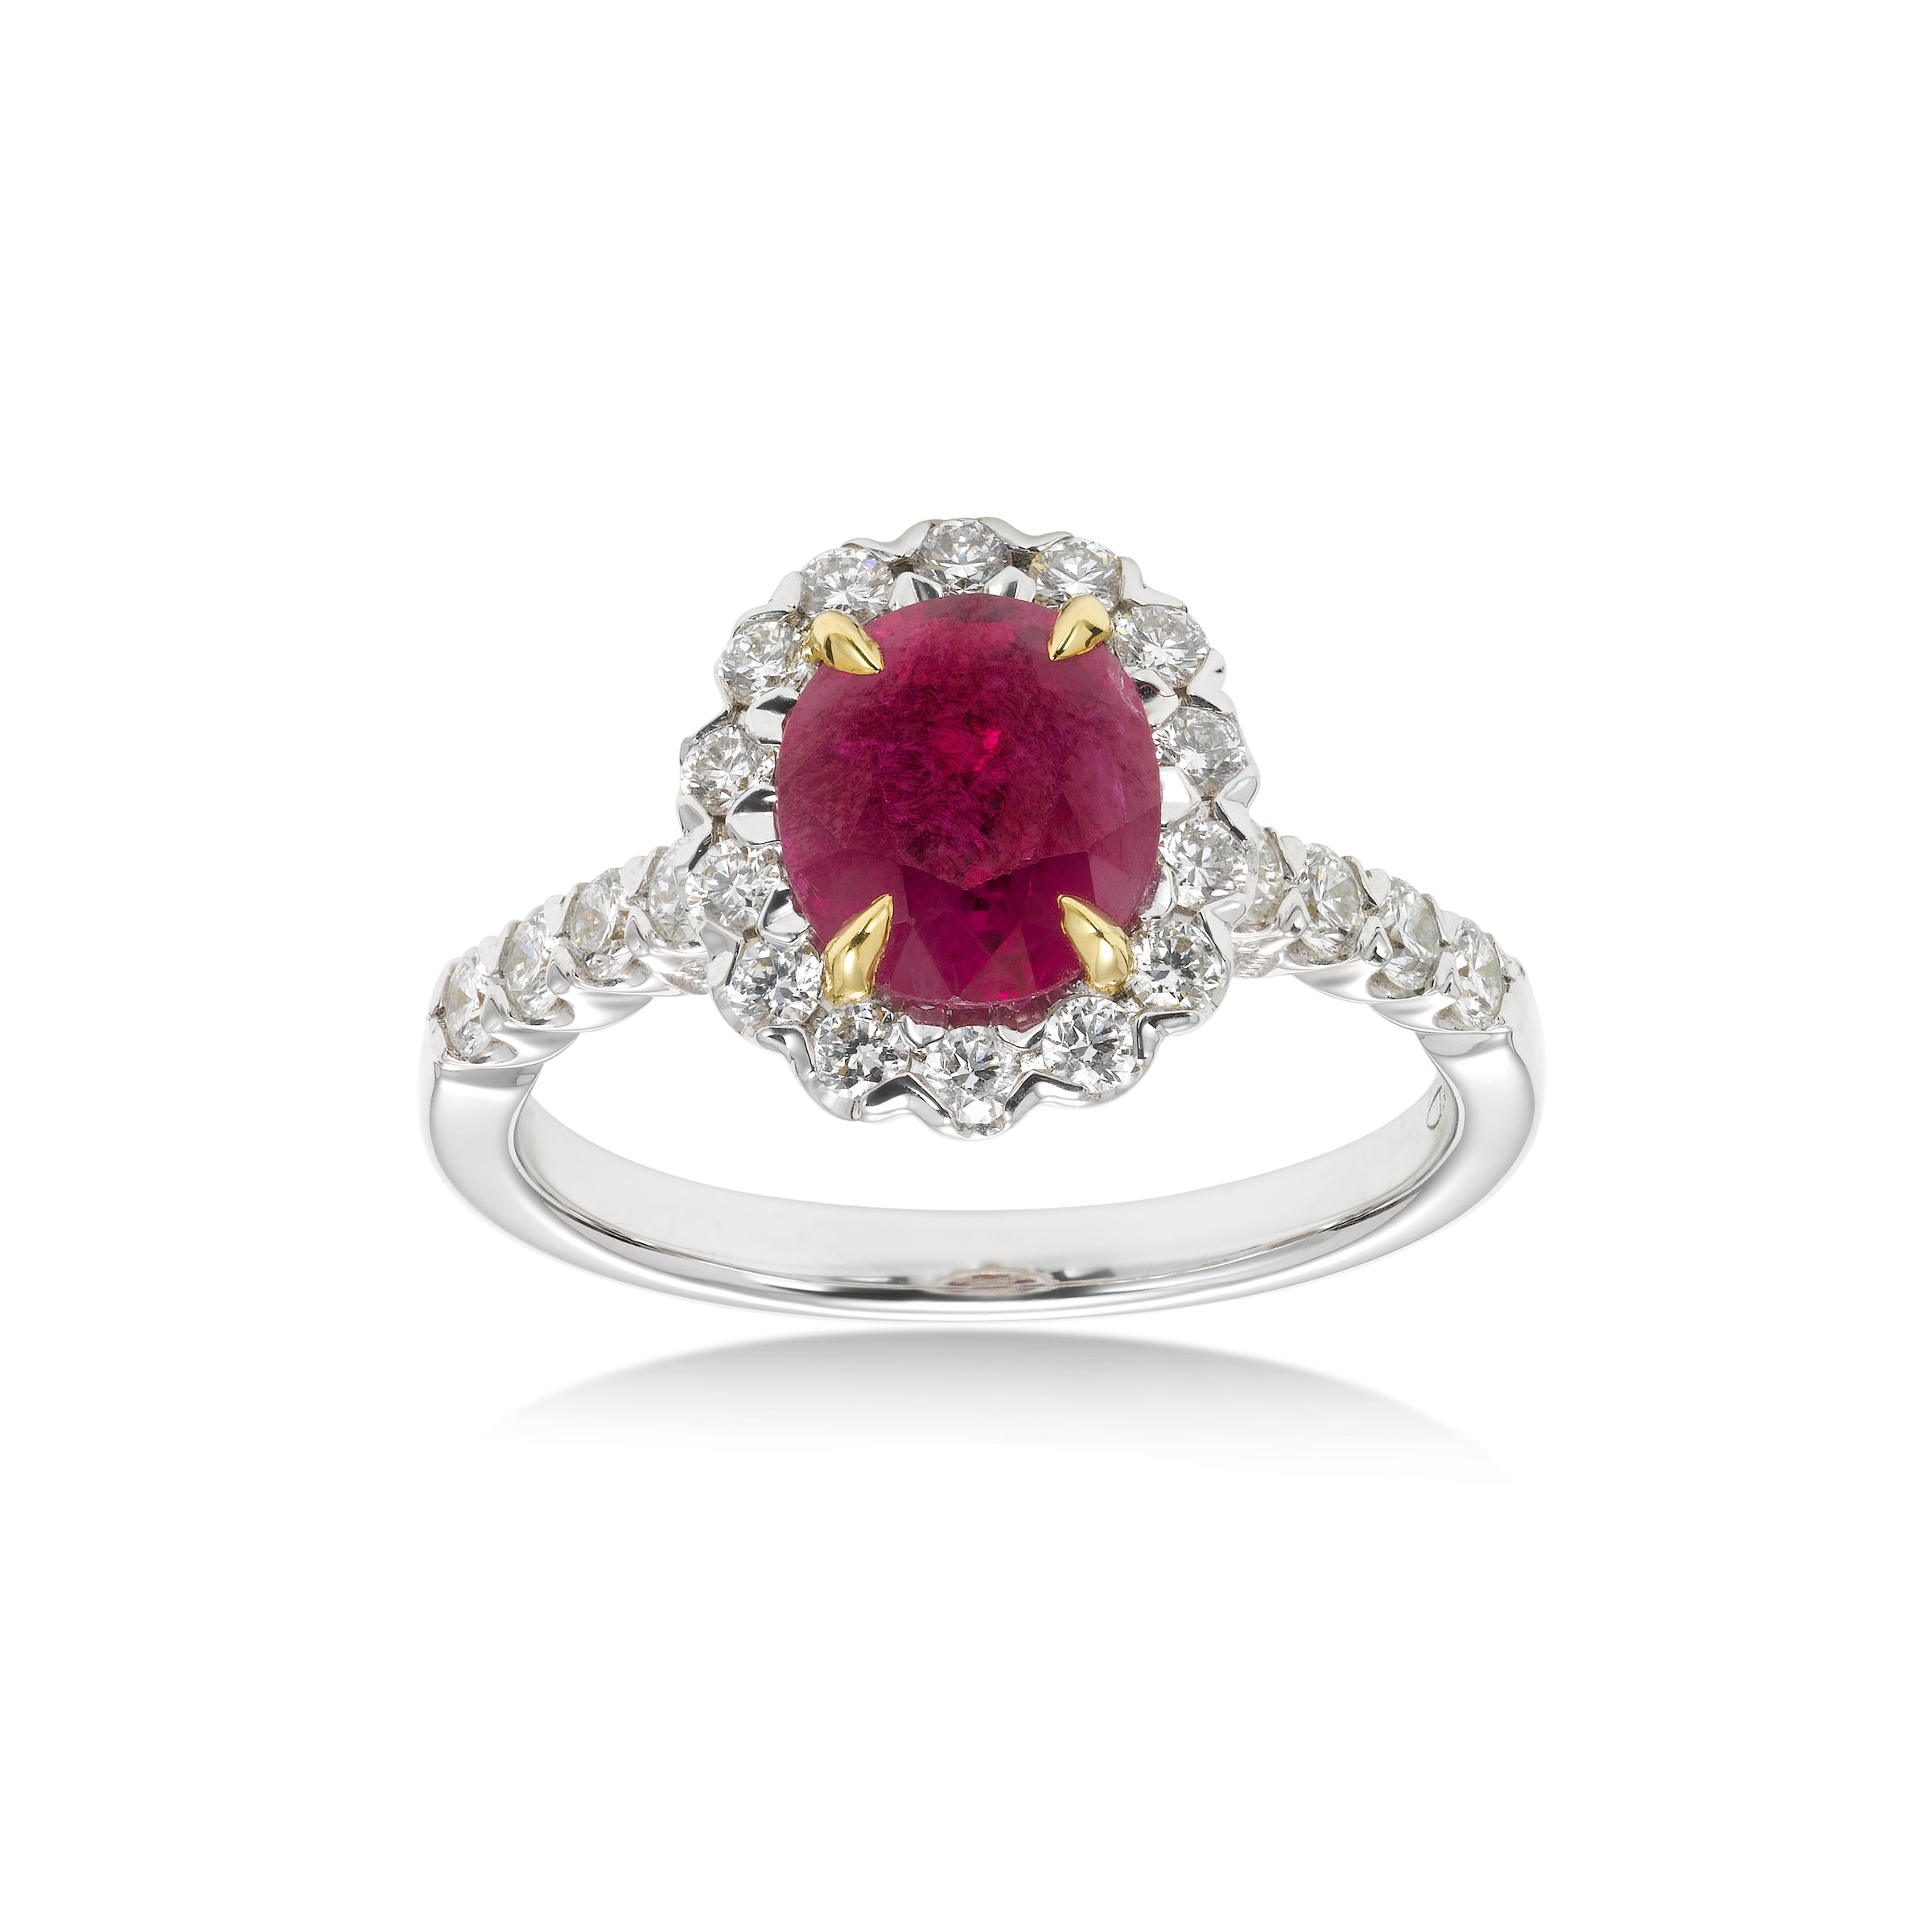 Ruby and Diamond Ring, 18K White Gold